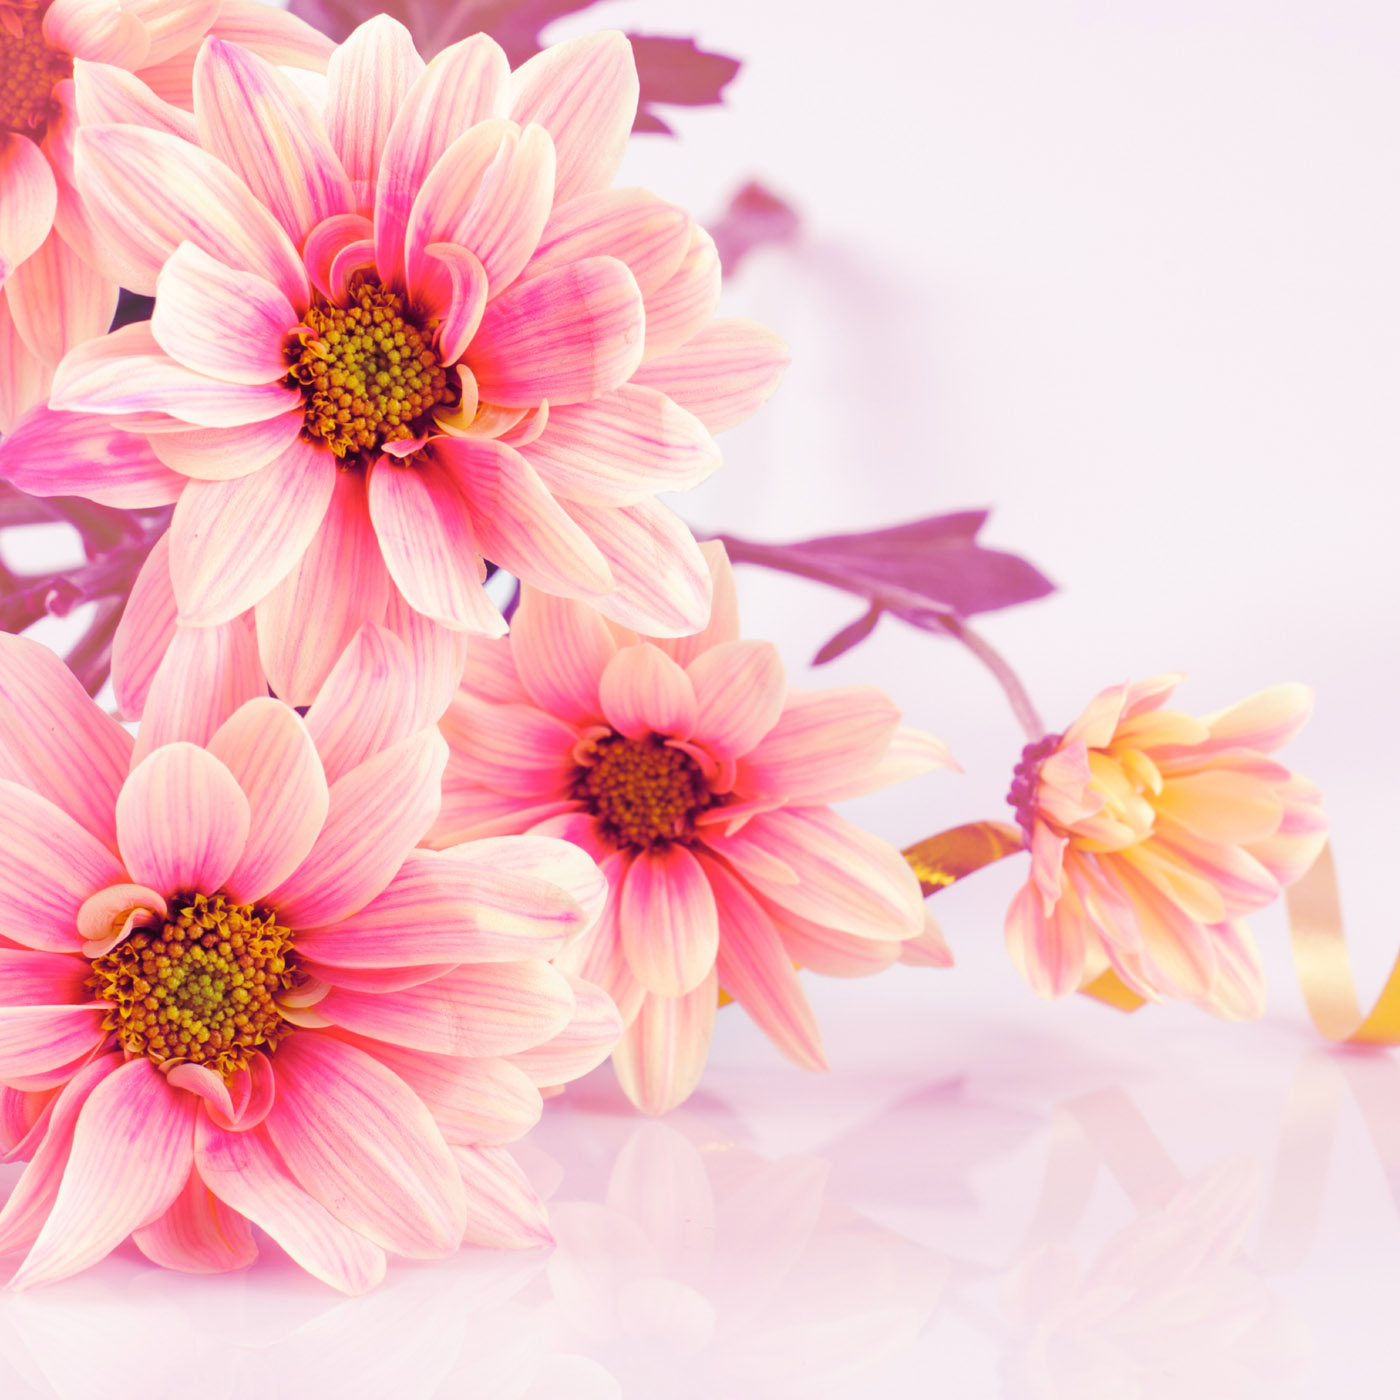 Flowers wallpapers 31143 flower wallpapers flowers flowers wallpapers 31143 mightylinksfo